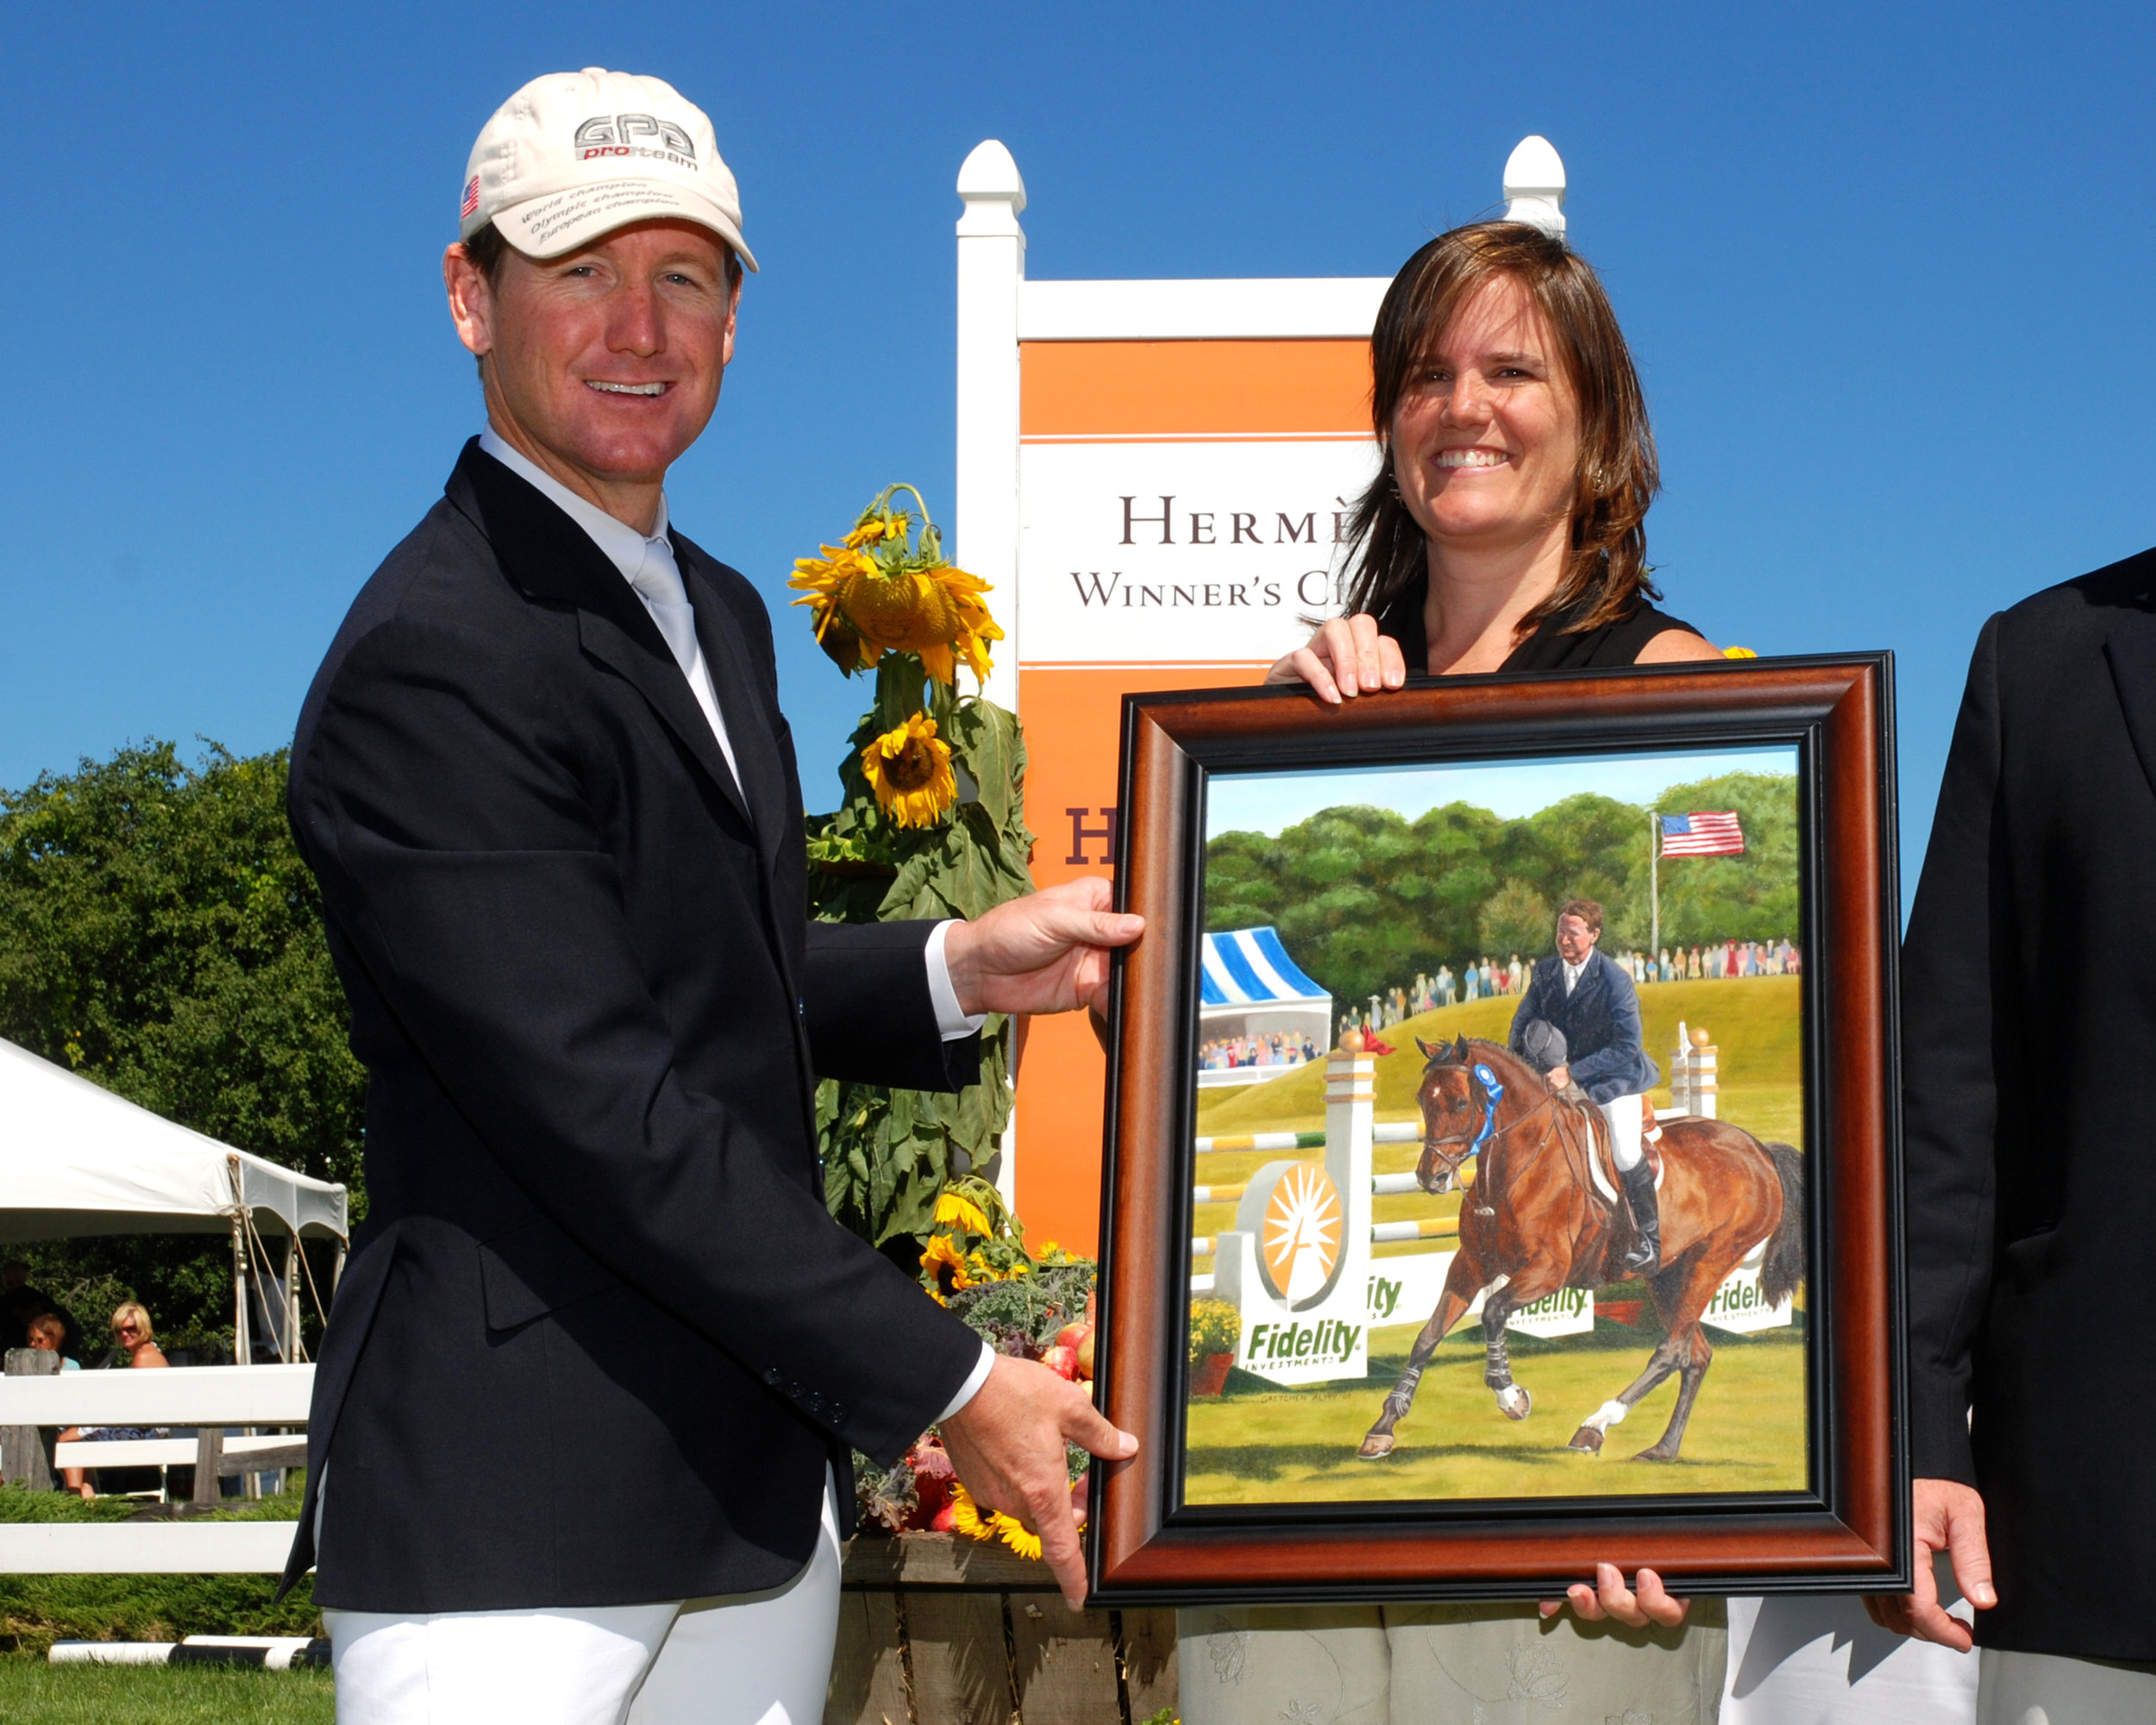 Mclain Ward Presentation - Here I am presenting Mclain Ward with the original oil painting I created of him and Goldika at the Fidelity Jumper Classic.